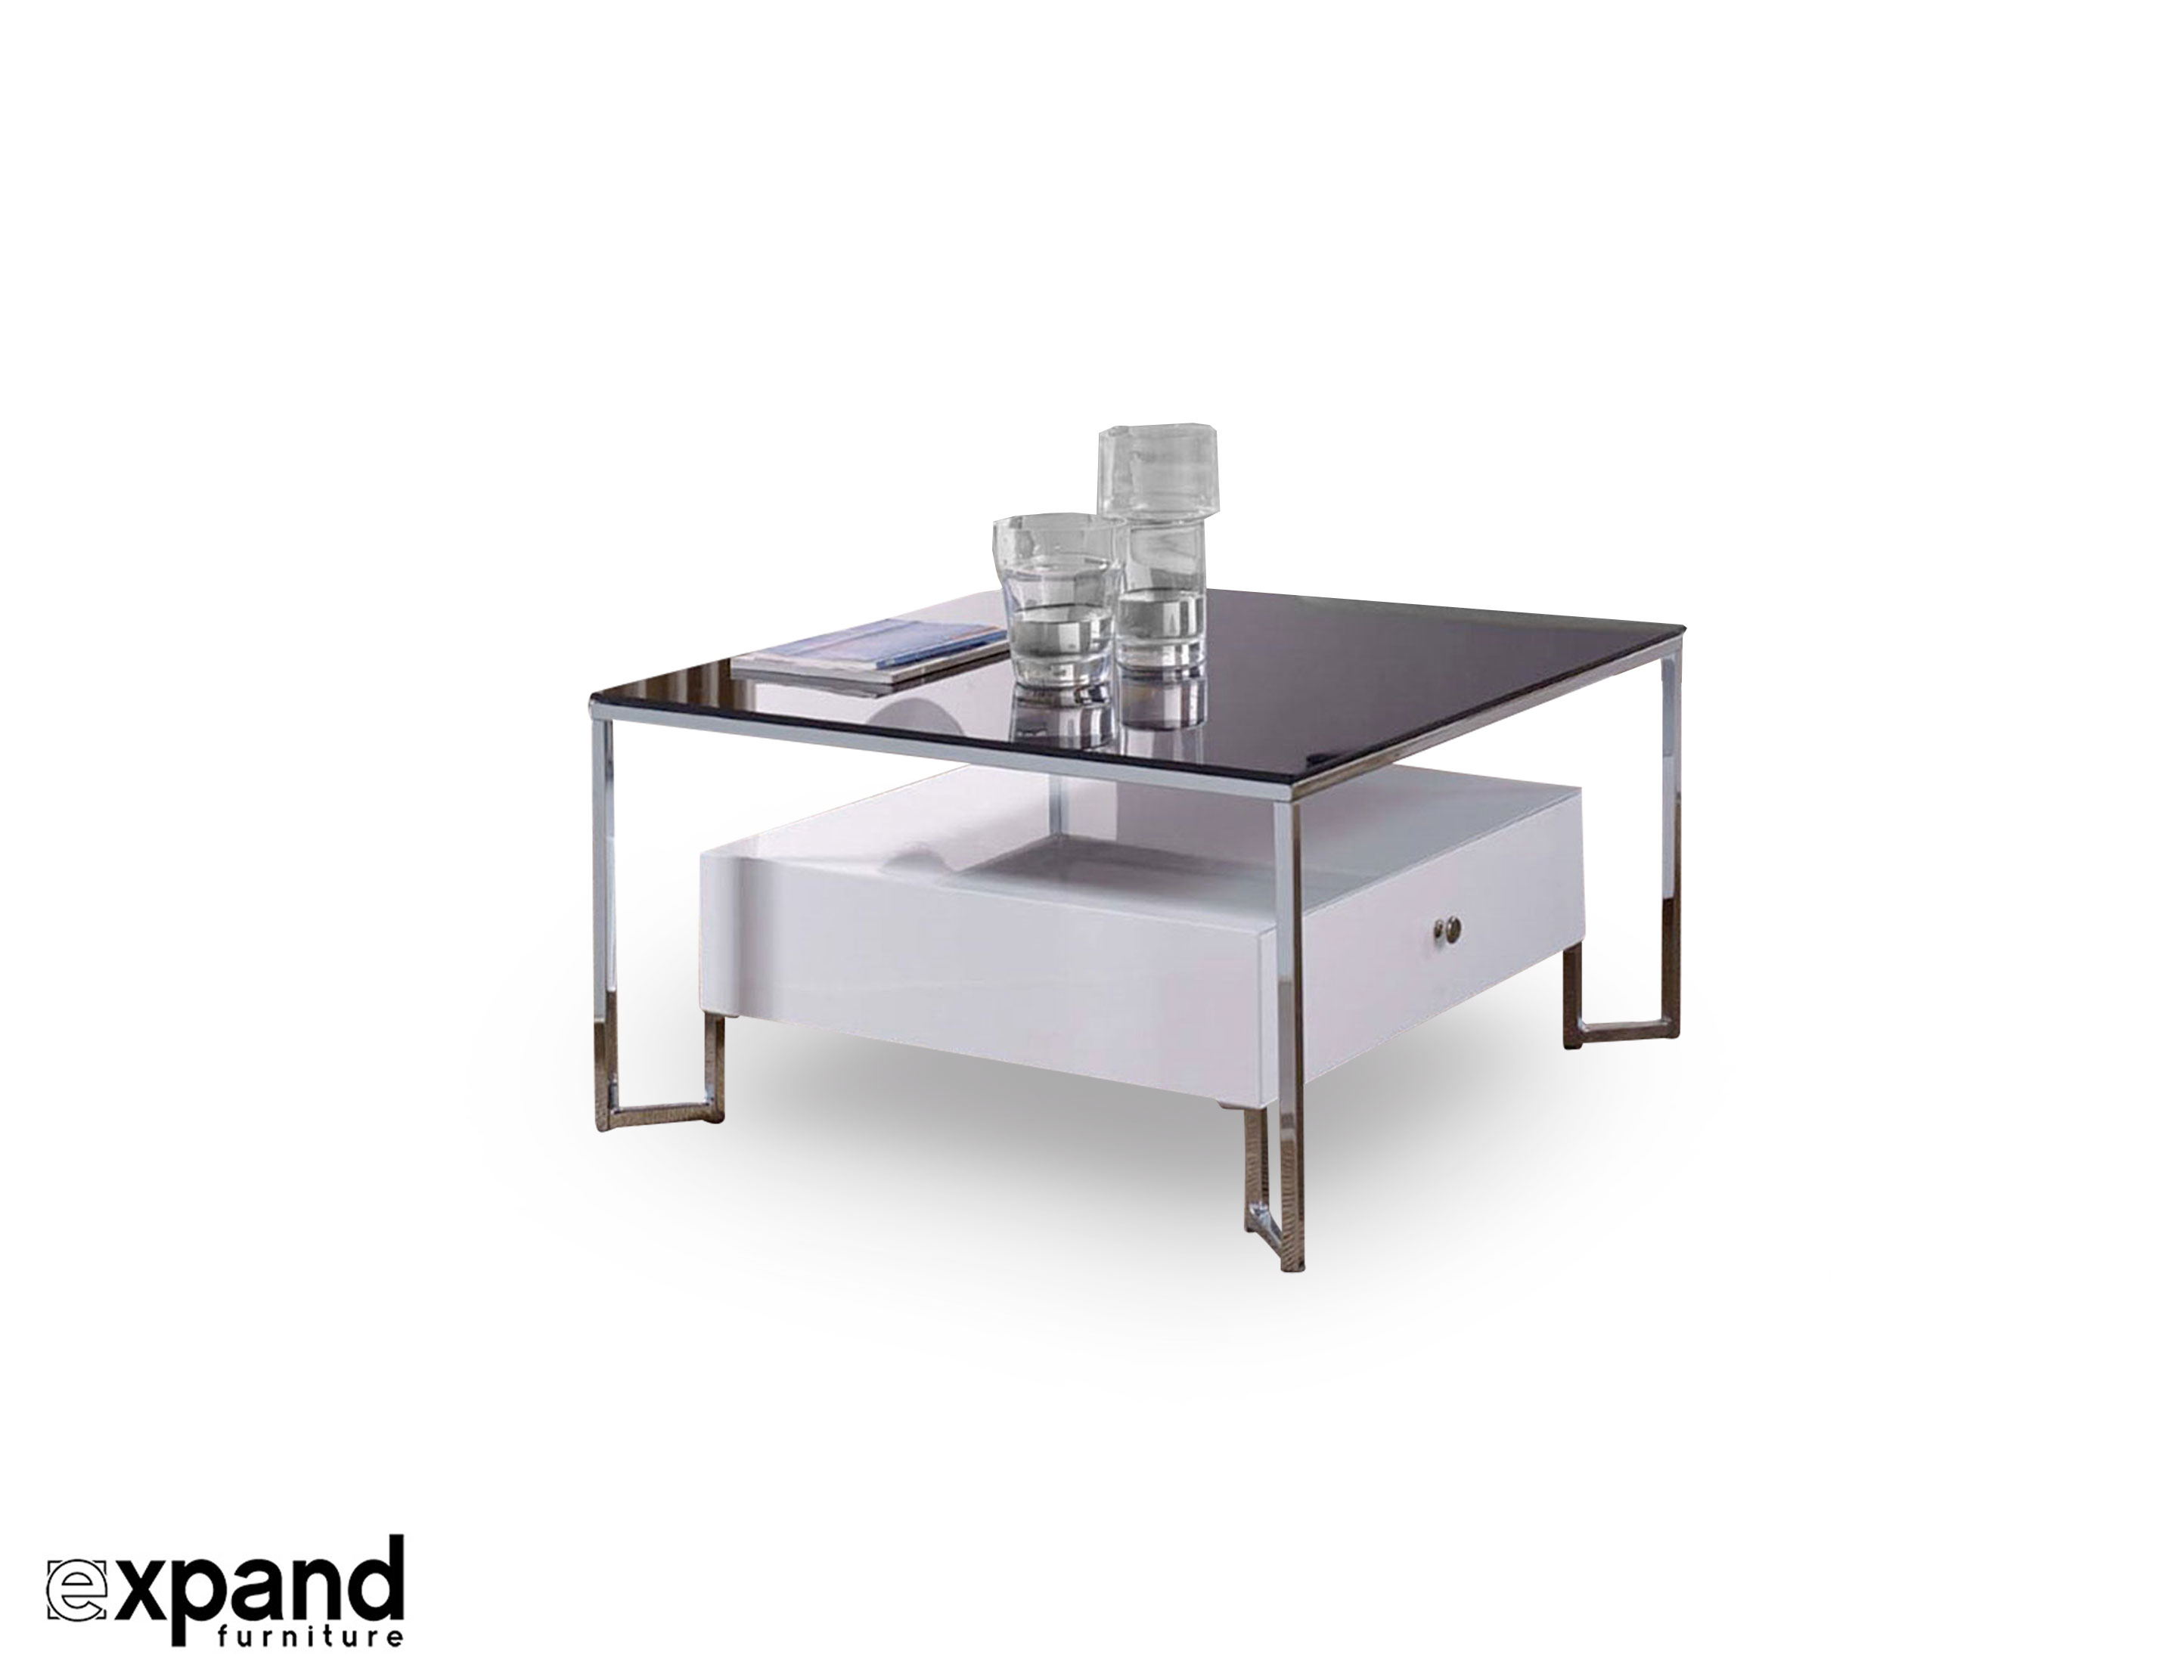 modern style coffee end tables expand furniture